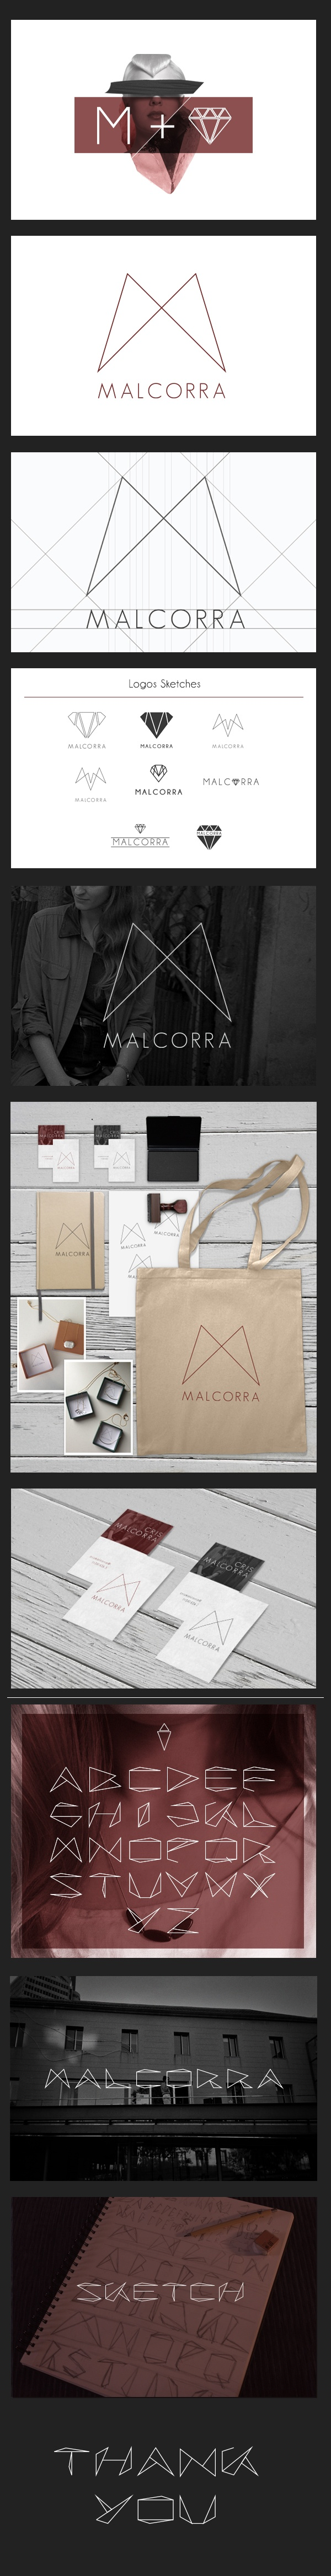 MALCORRA (Branding) by Yonathan Tanu, via Behance